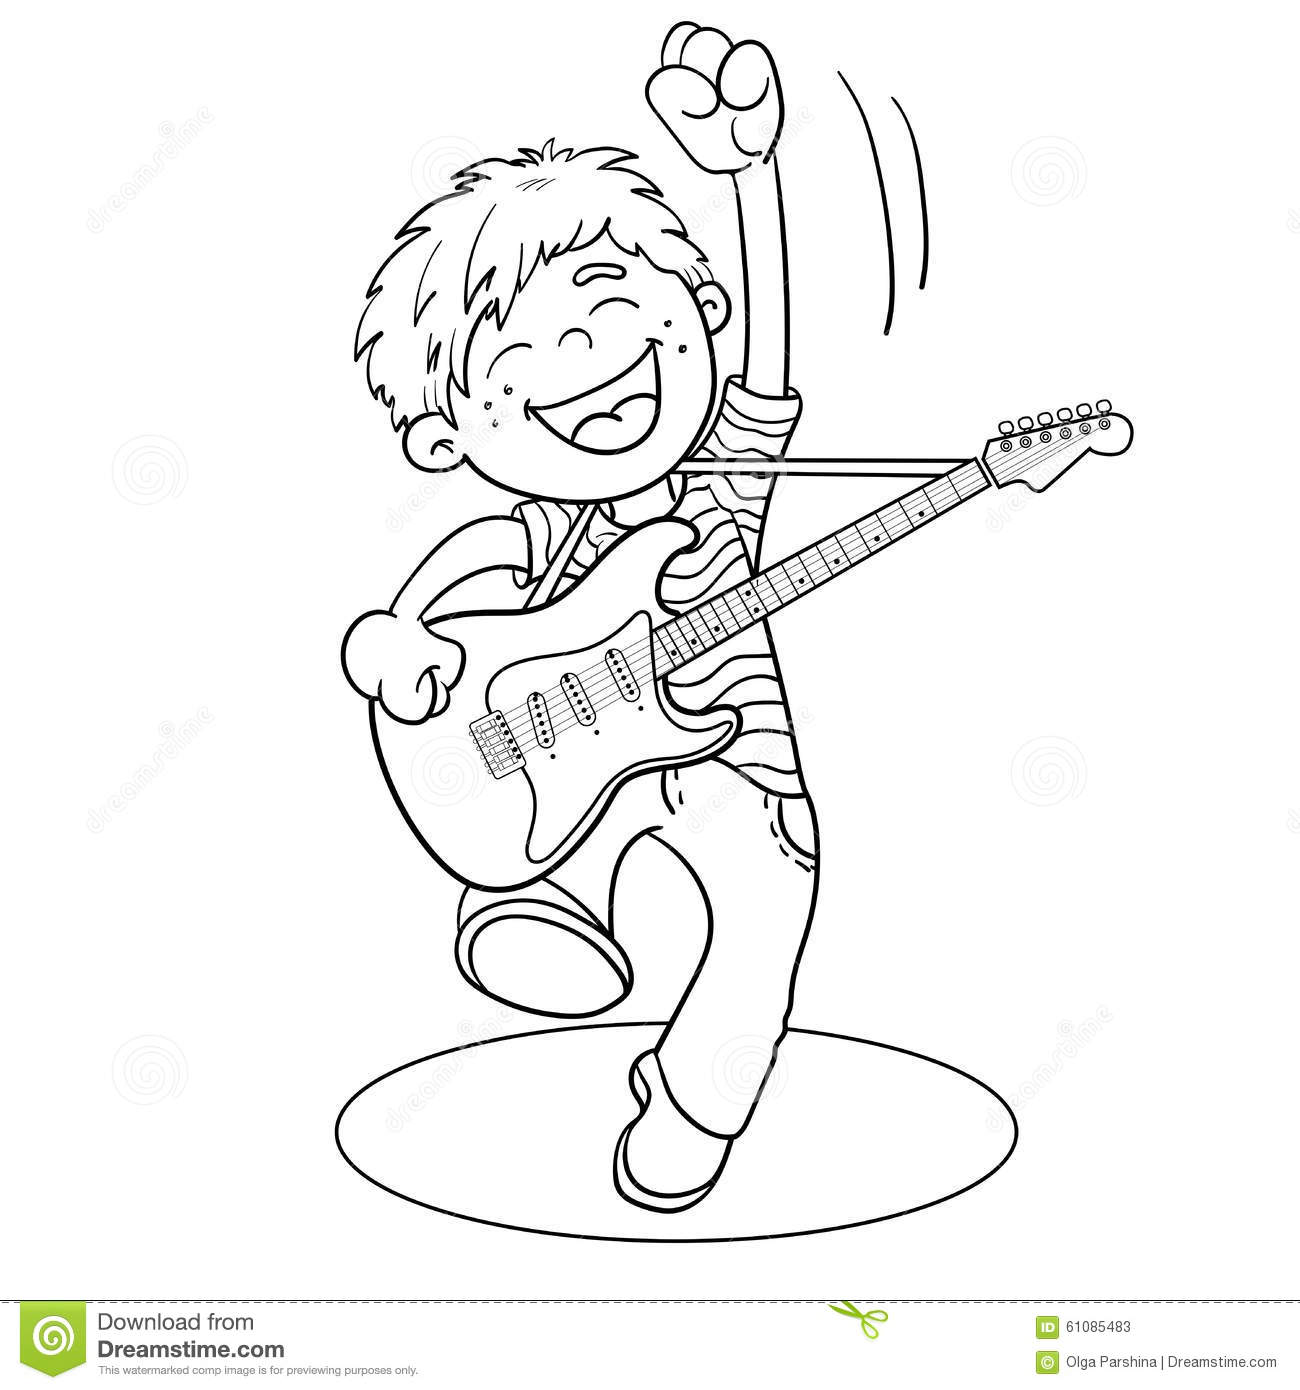 Coloring Page Outline Of A Cartoon Boy With A Guitar Stock